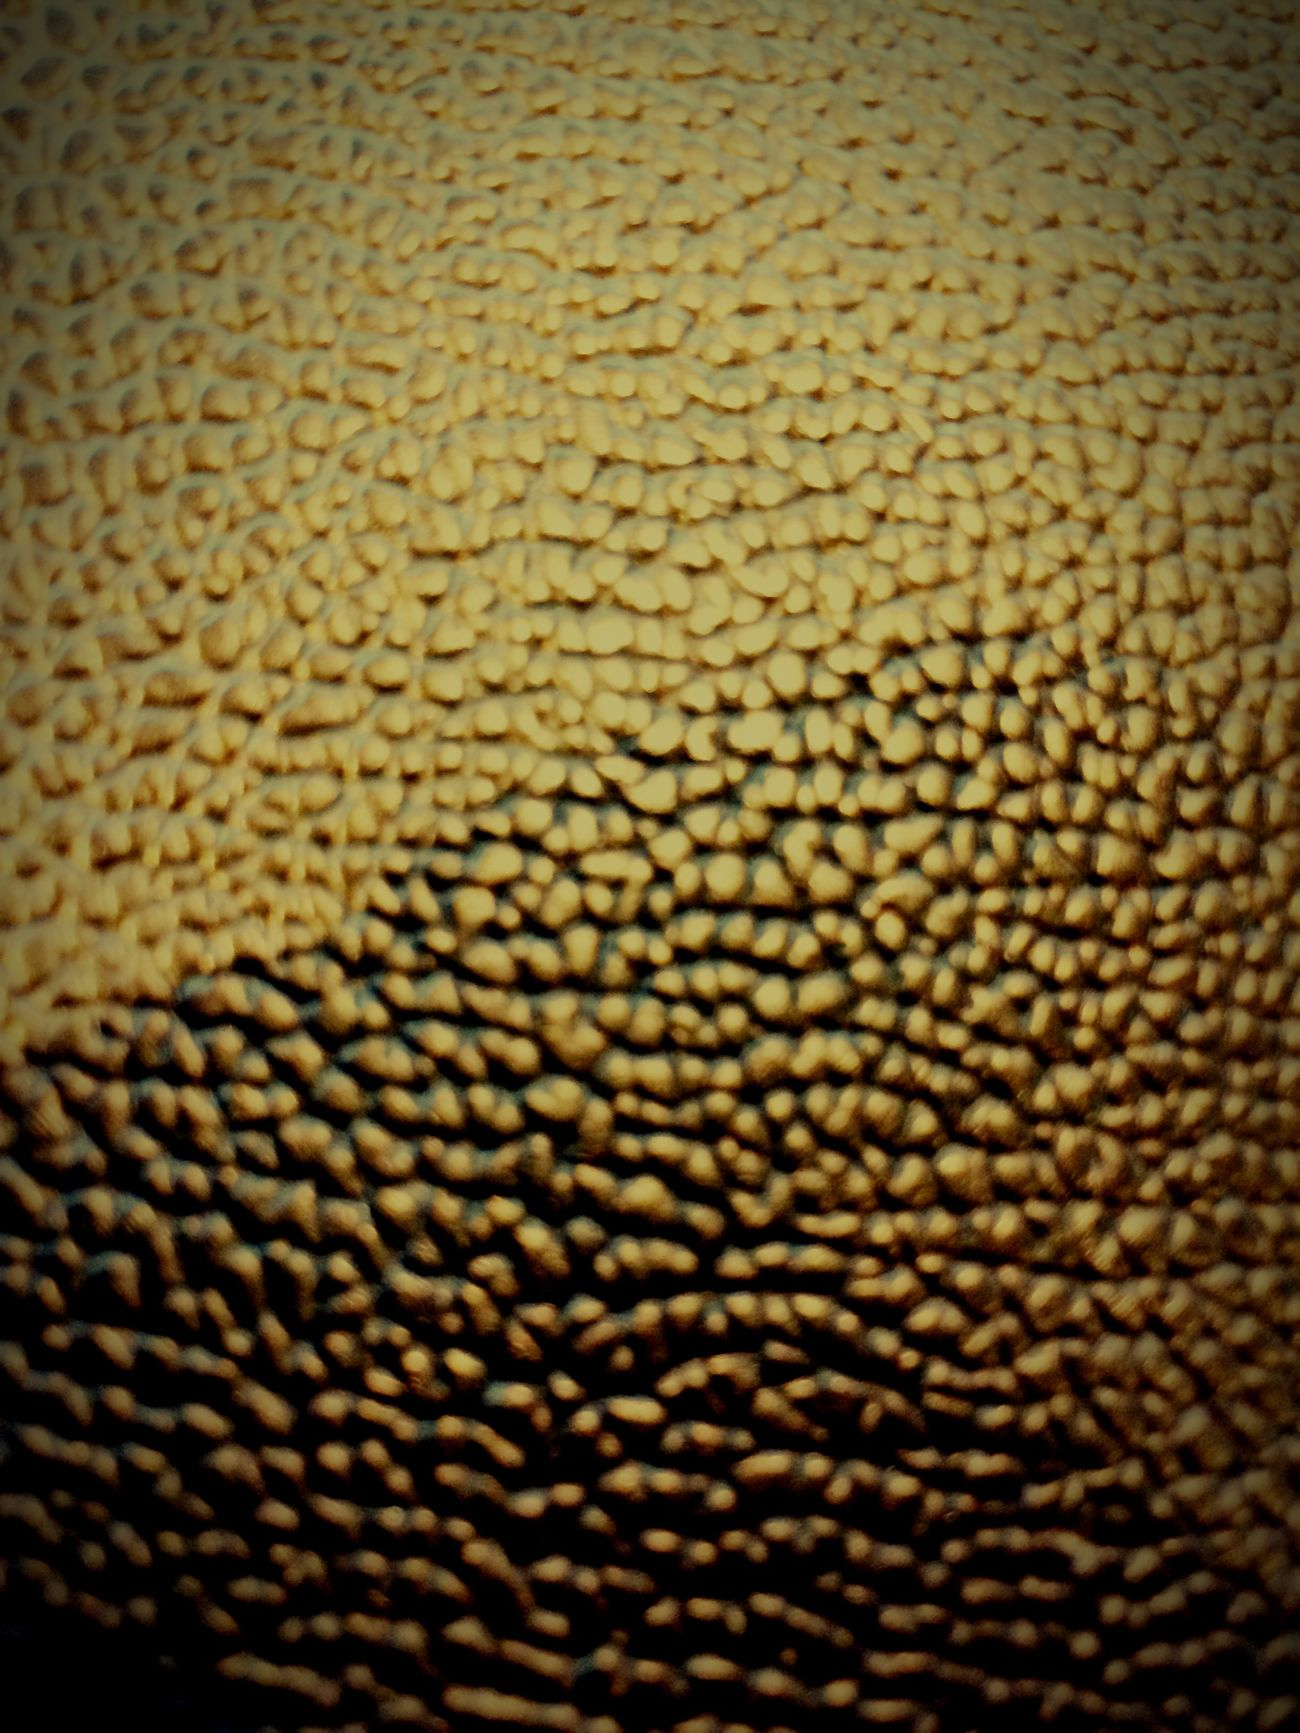 Textured  Ask Me Questions Comments Welcome First Eyeem Photo Testing Camera Comments Are Welcome FirstEyeEmPic Artistic Textured